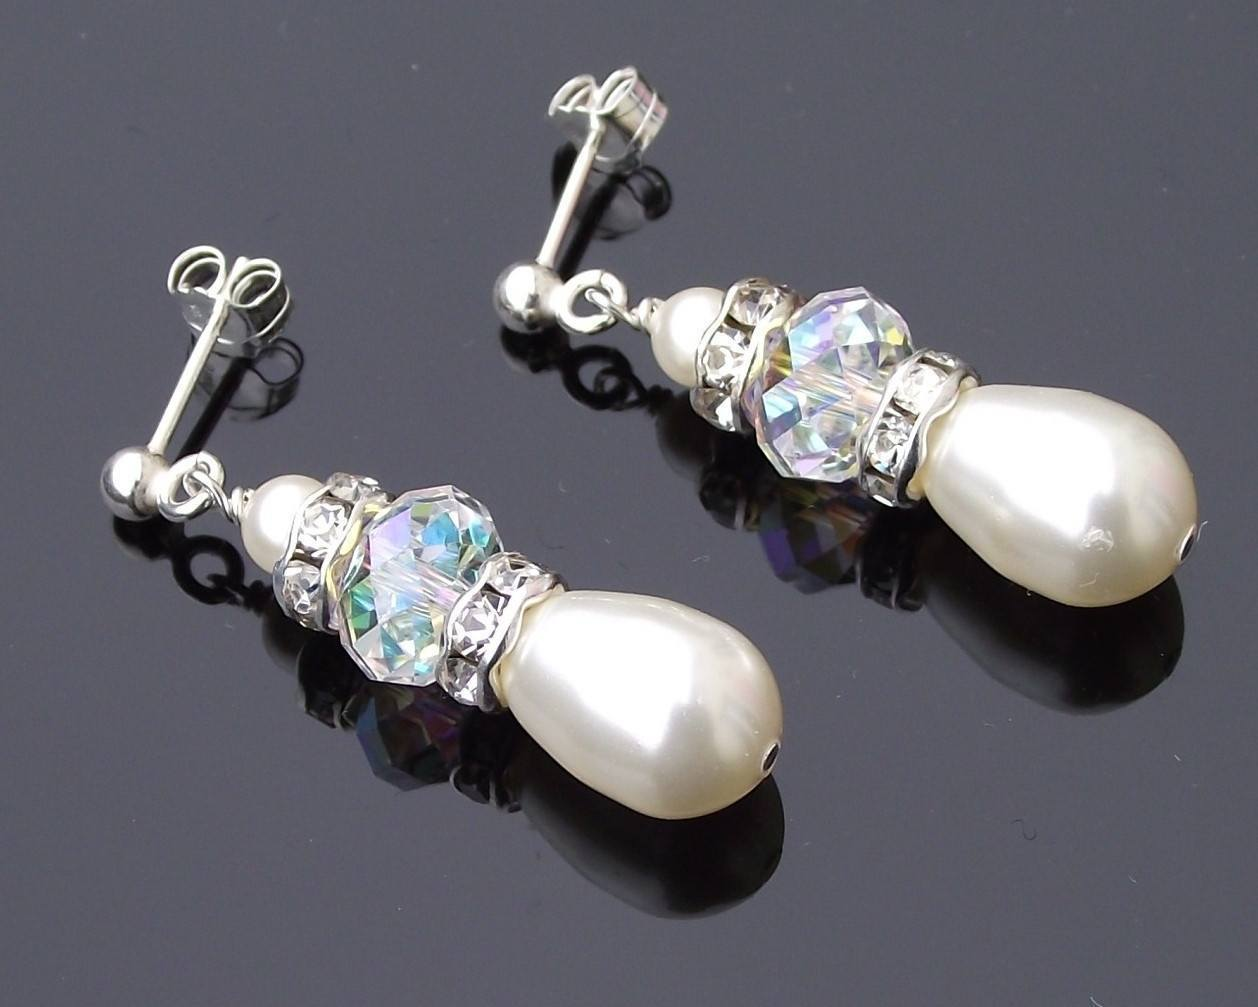 Wedding Earrings - Teardrop Pearl And Swarovski Crystal Earrings, Meg